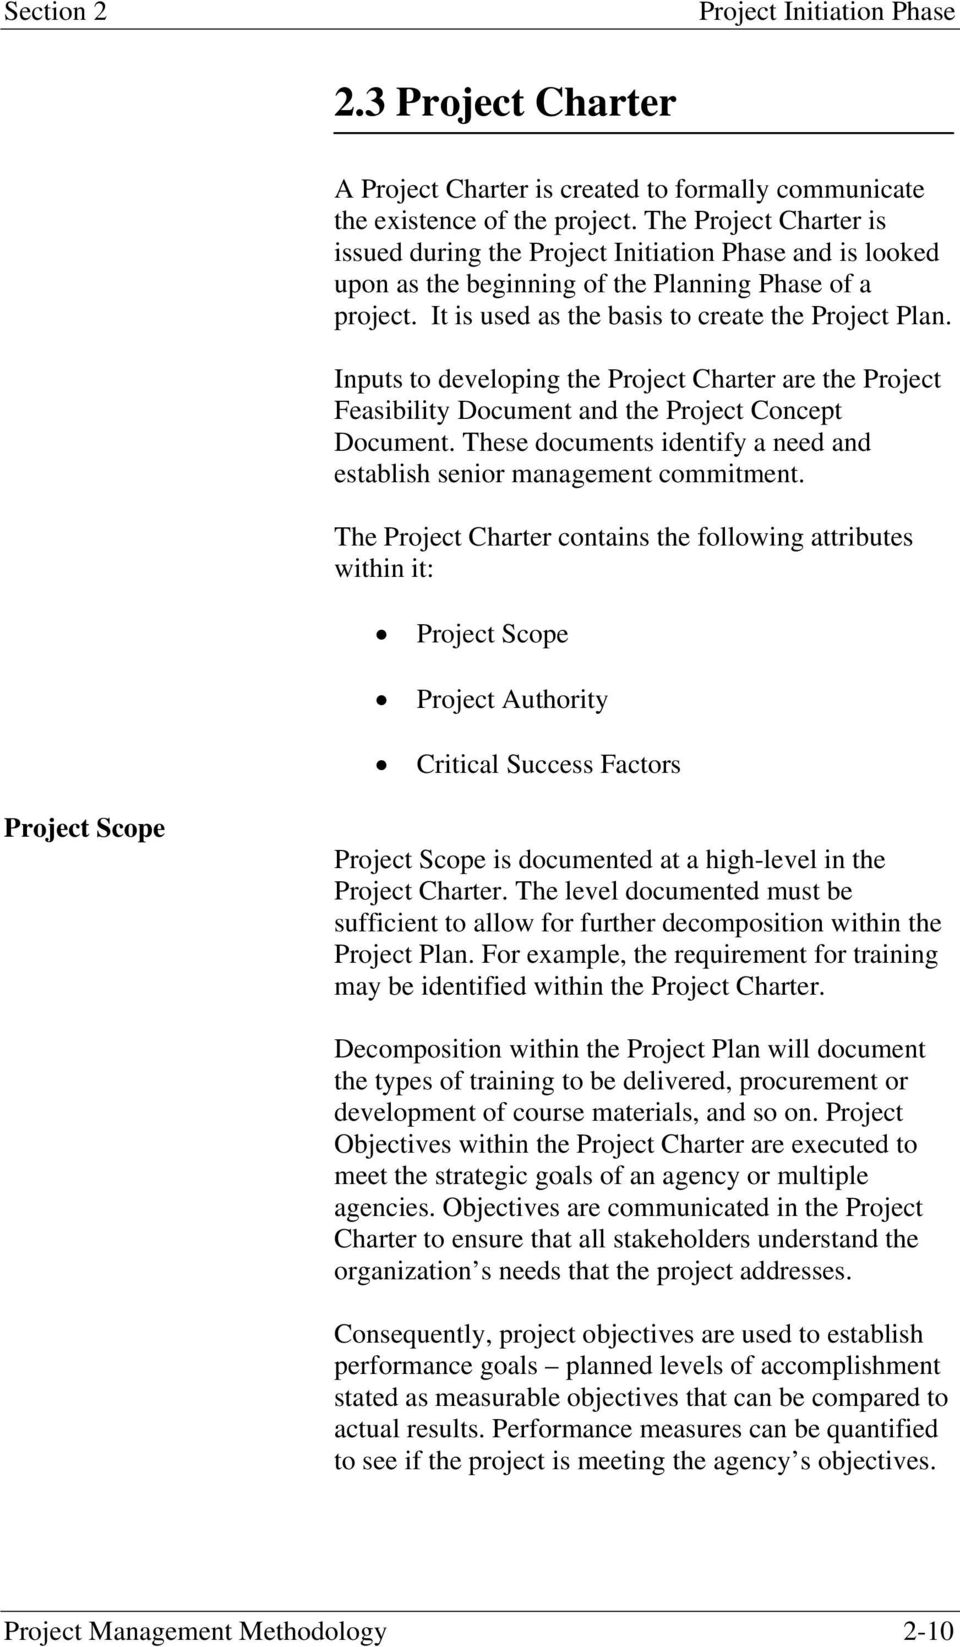 Inputs to developing the Project Charter are the Project Feasibility Document and the Project Concept Document. These documents identify a need and establish senior management commitment.